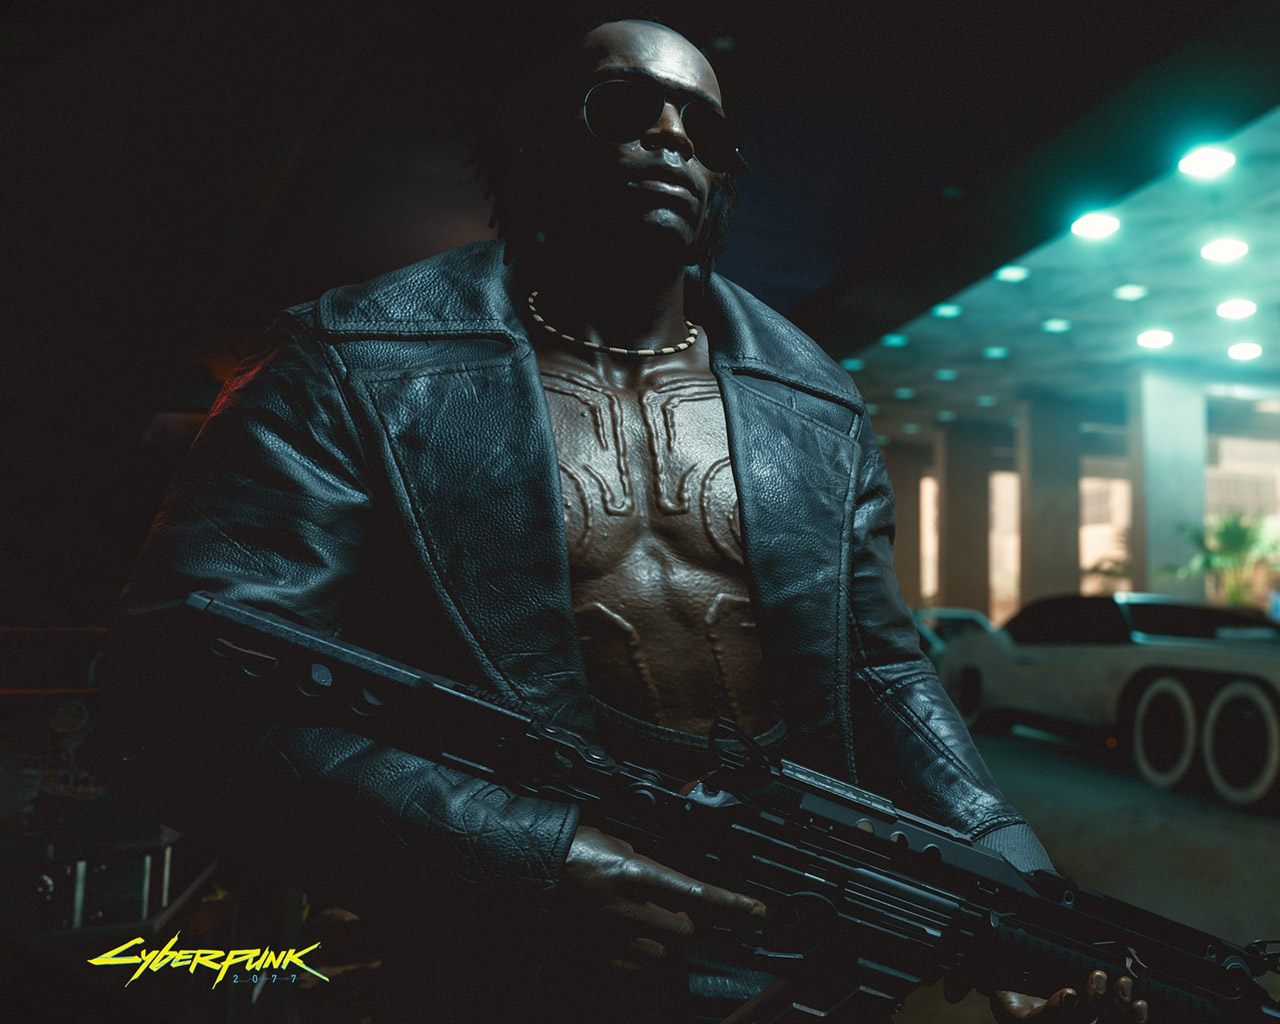 Free Cyberpunk 2077 Wallpaper in 1280x1024